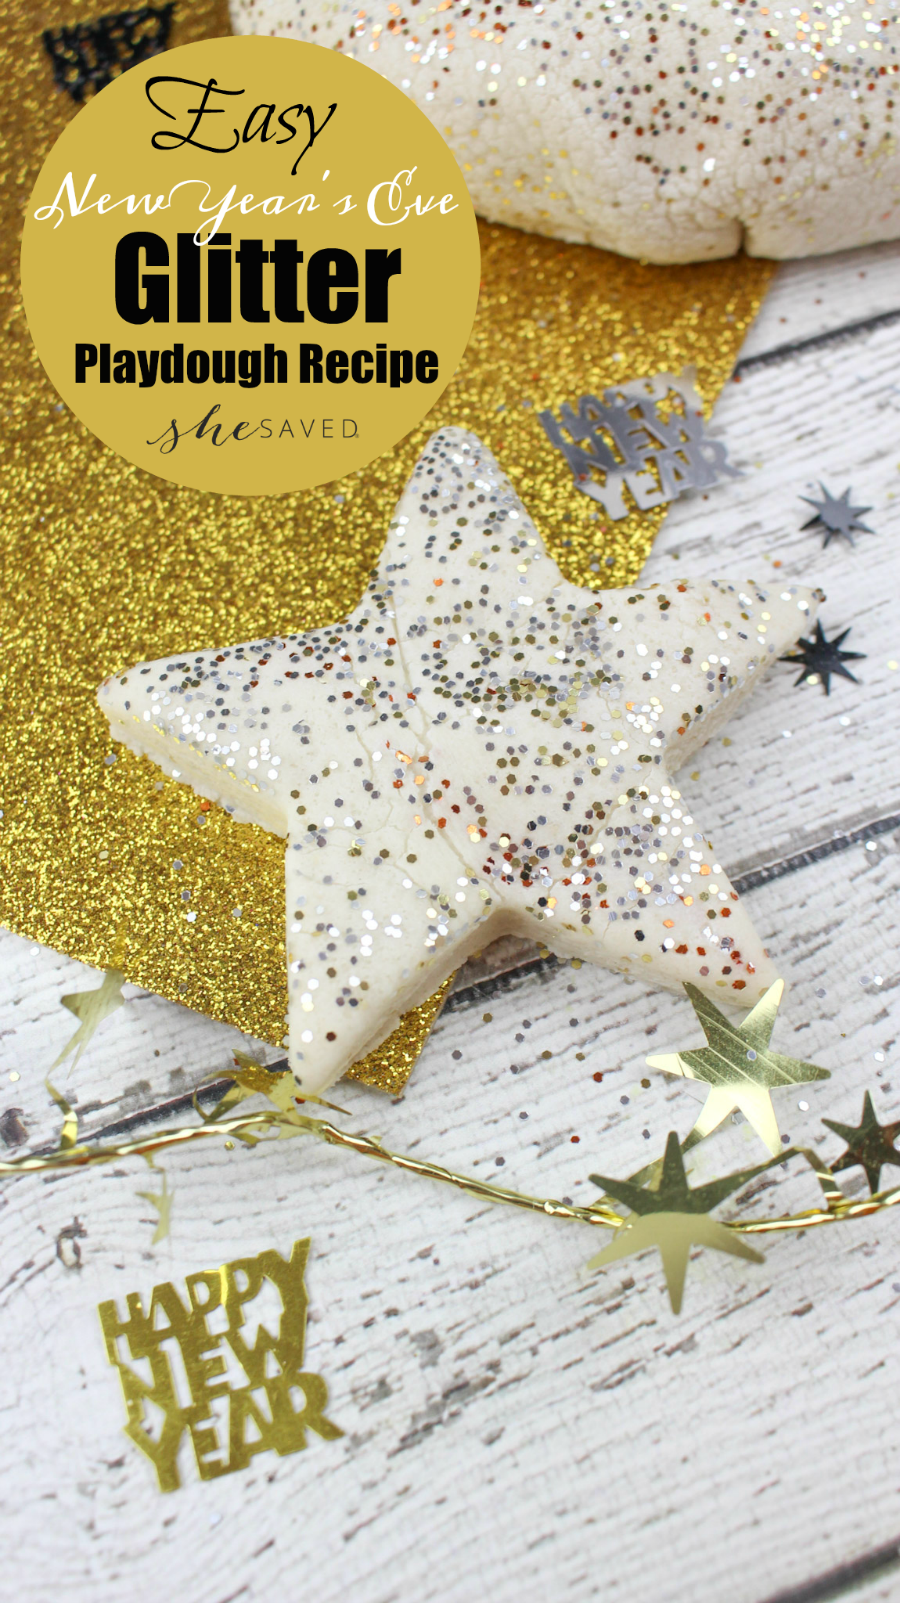 Looking for a fun activity for the kids on New Year's Eve? Check out my easy New Year Glitter Playdough Recipe!